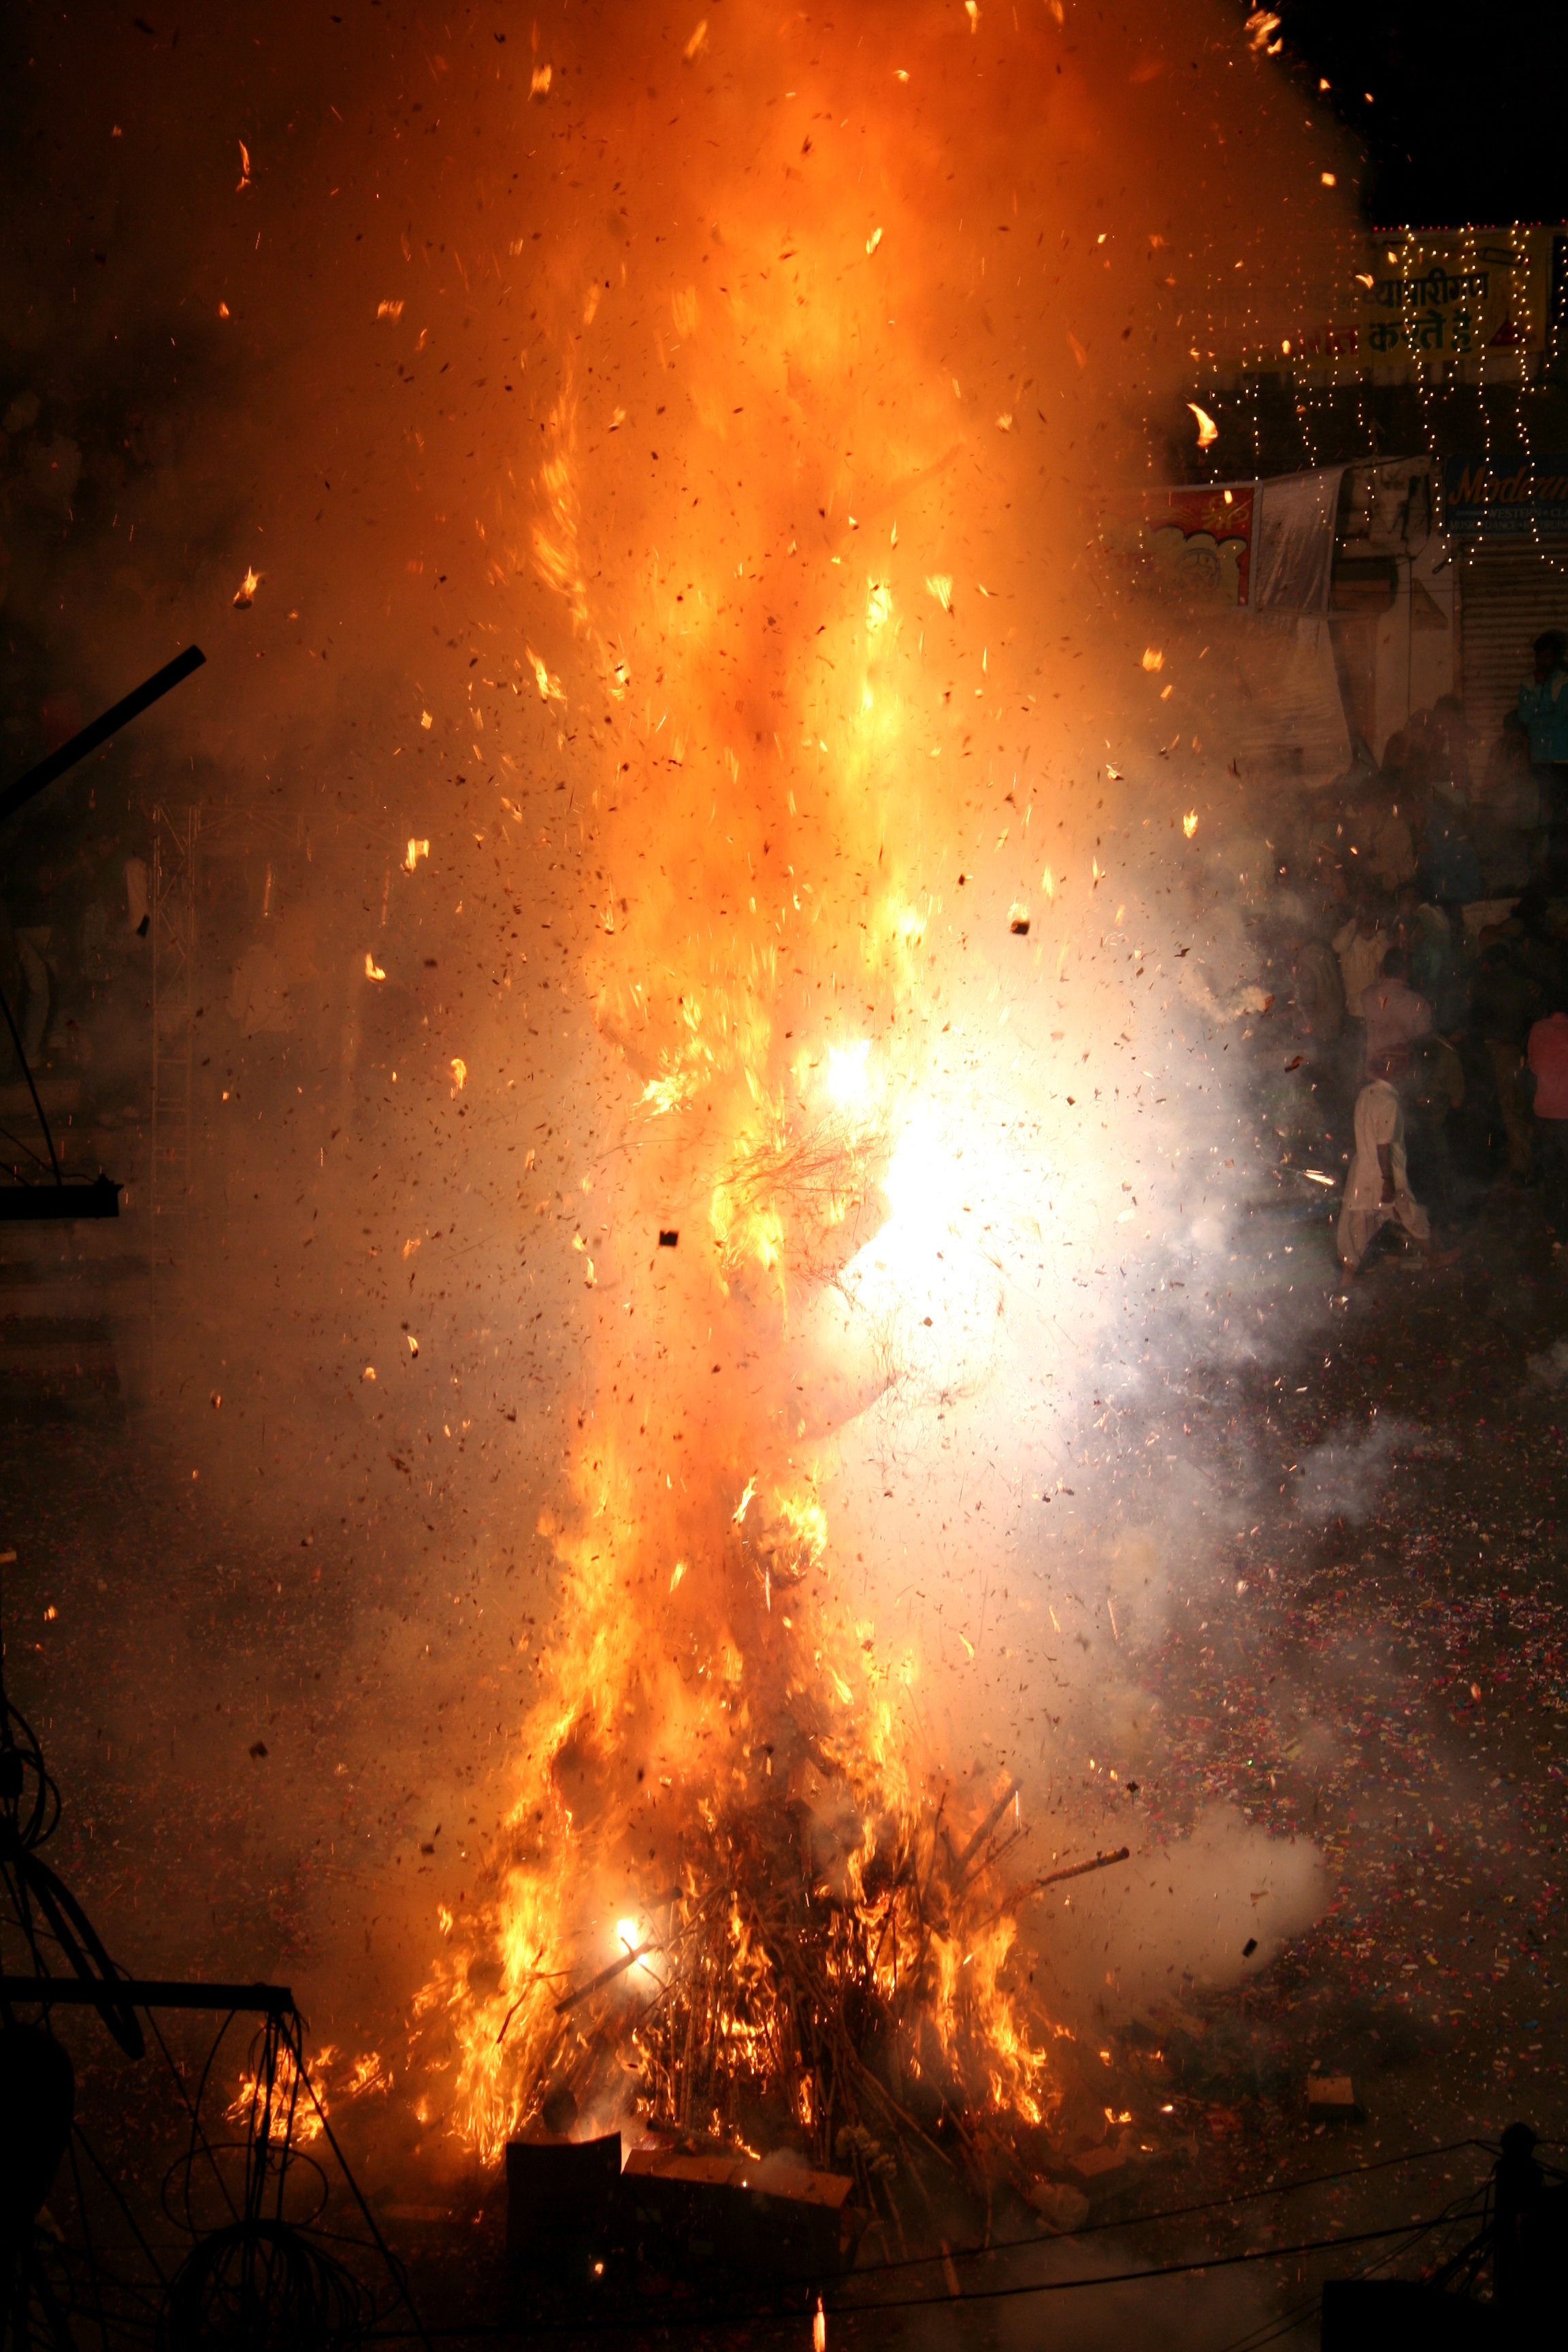 https://upload.wikimedia.org/wikipedia/commons/7/73/Holi_Bonfire_Udaipur.jpg